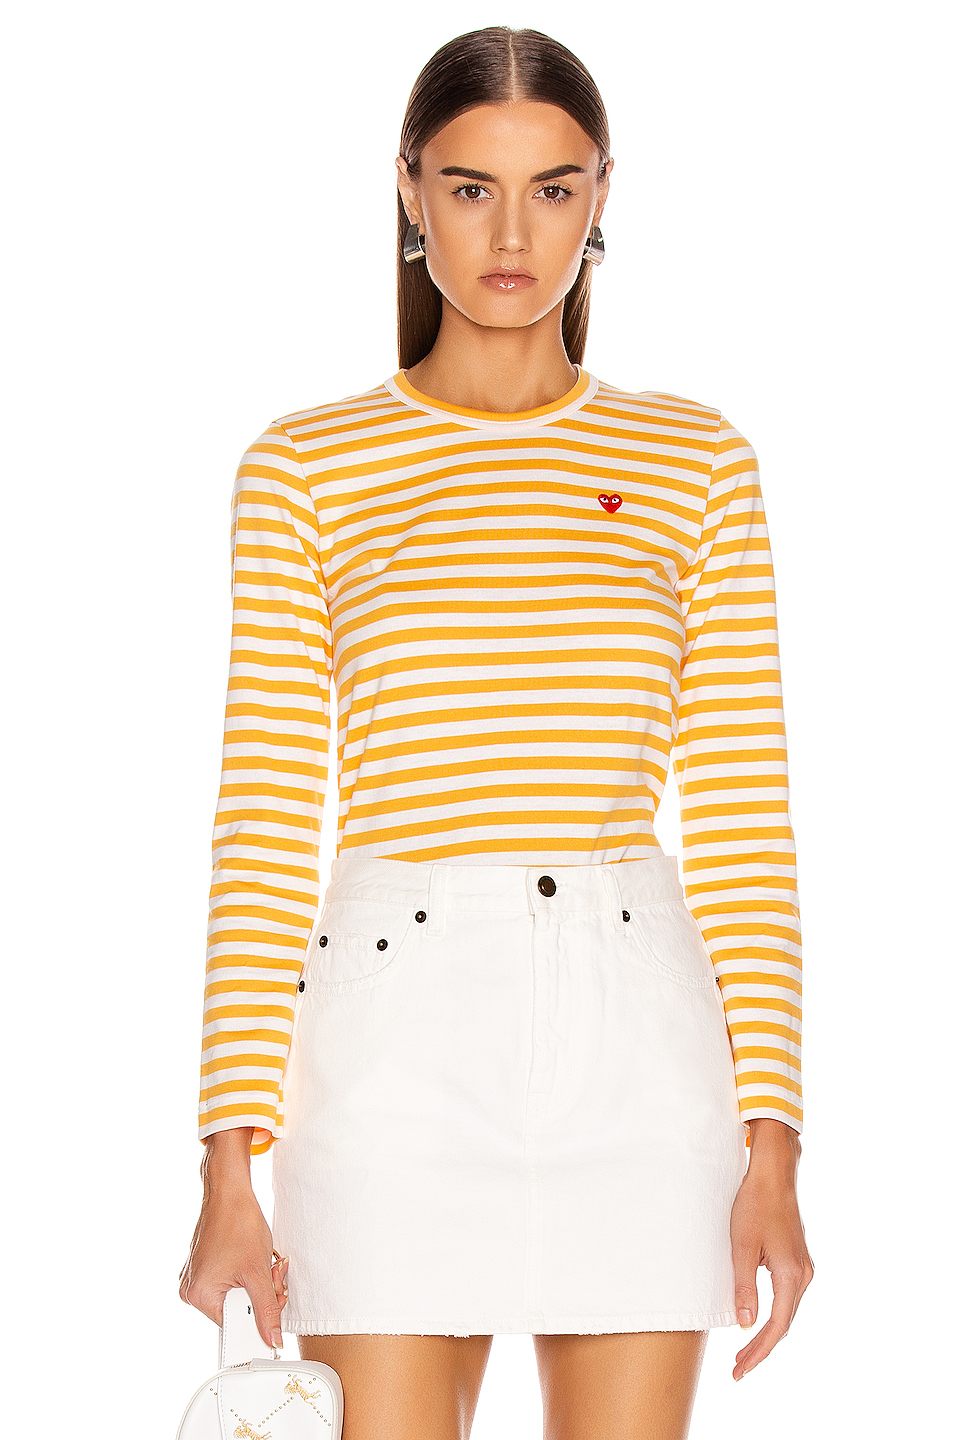 b284ee14f0 Jual Comme Des Garcons PLAY Small Red Heart Striped Tee - 100 ...